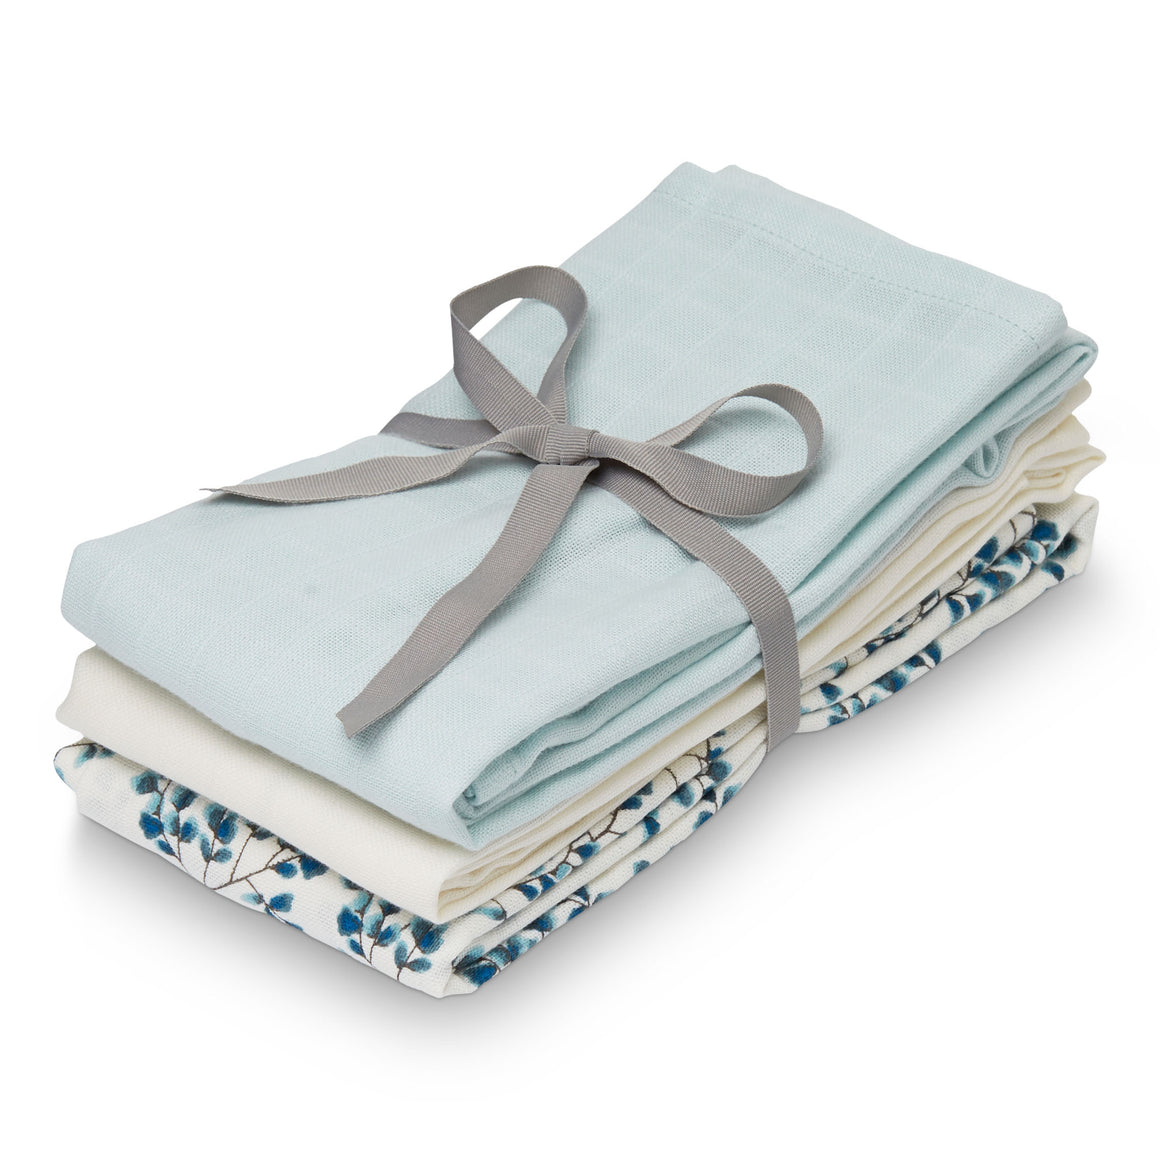 Cam Cam muslin cloths 3 pack - Fiori Mix